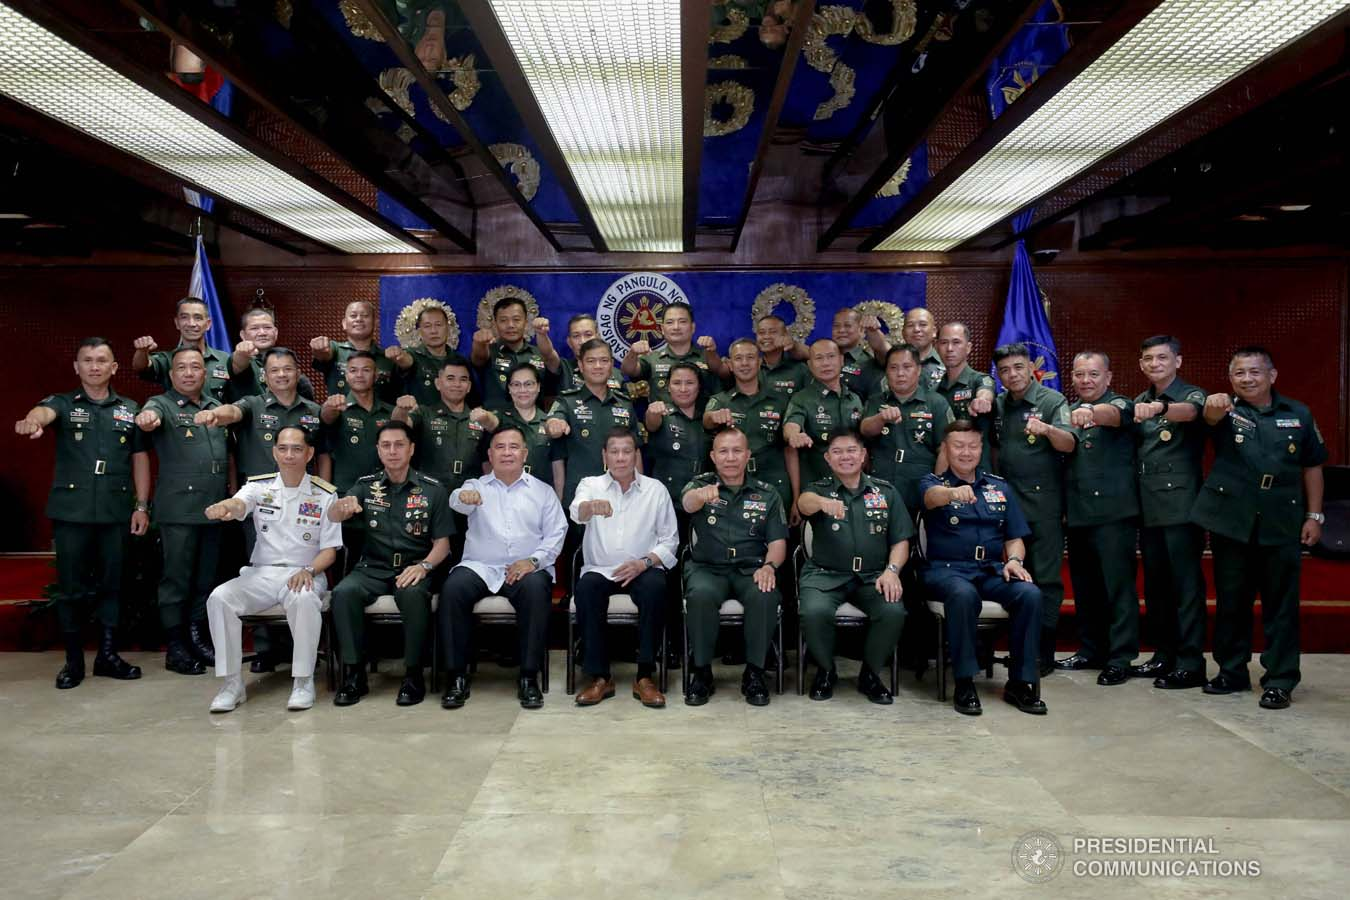 President Rodrigo Roa Duterte flashes his signature pose with officers of the Armed Forces of the Philippines Council of the Sergeants Major during the Thanksgiving gathering he hosted at the Malacañan Palace on December 10, 2019. SIMEON CELI JR./PRESIDENTIAL PHOTO